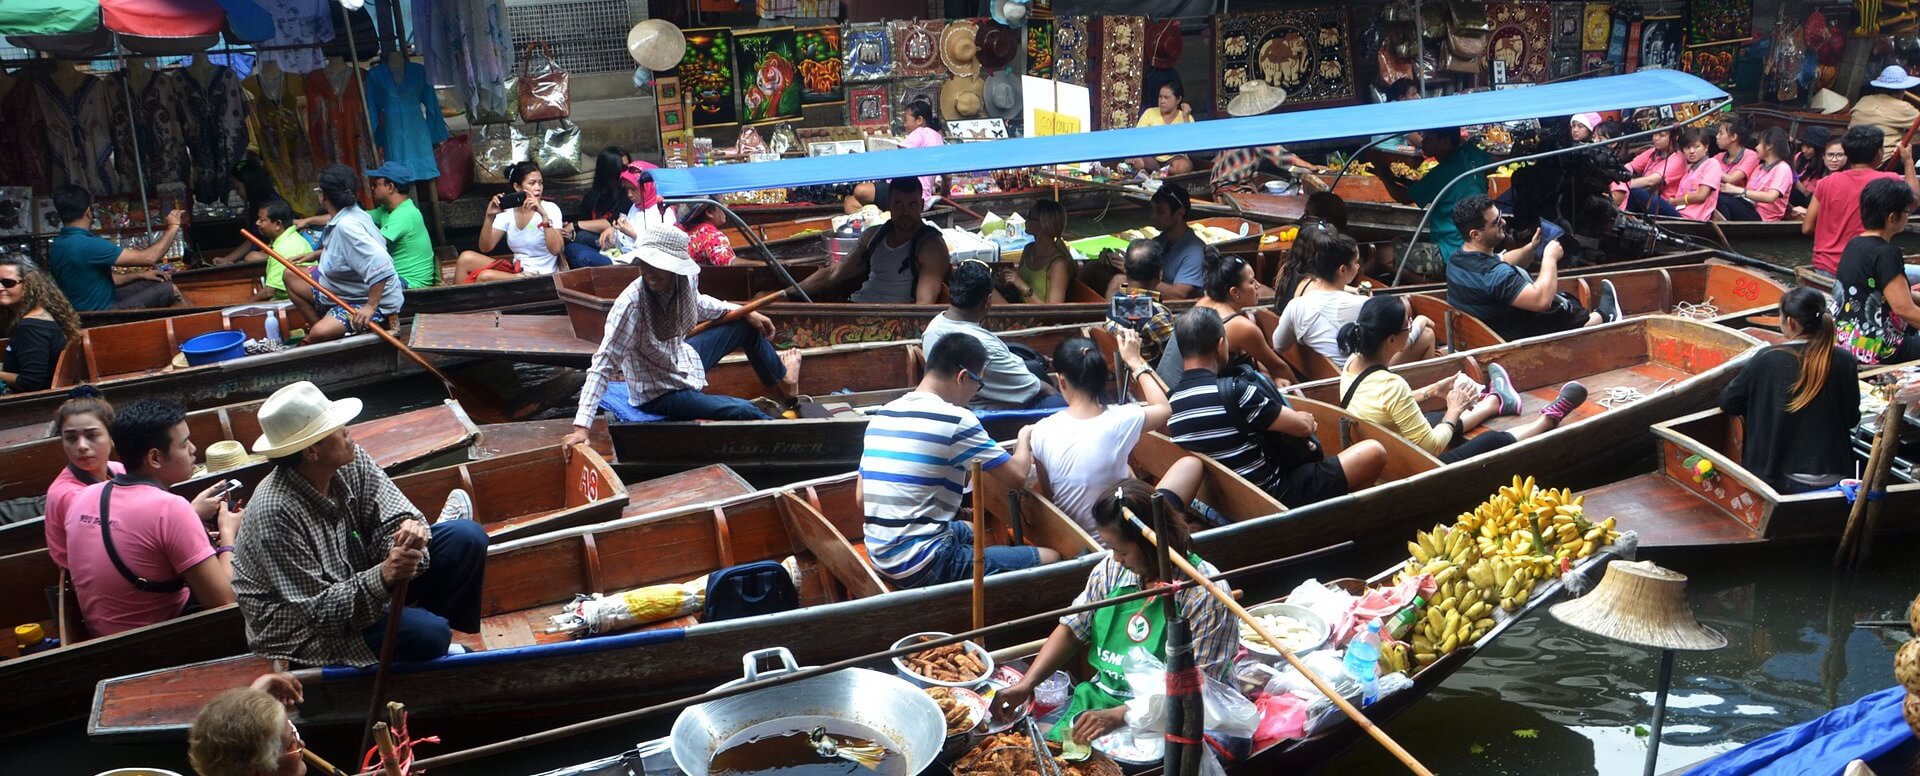 Discover the Floating Markets - Thailand